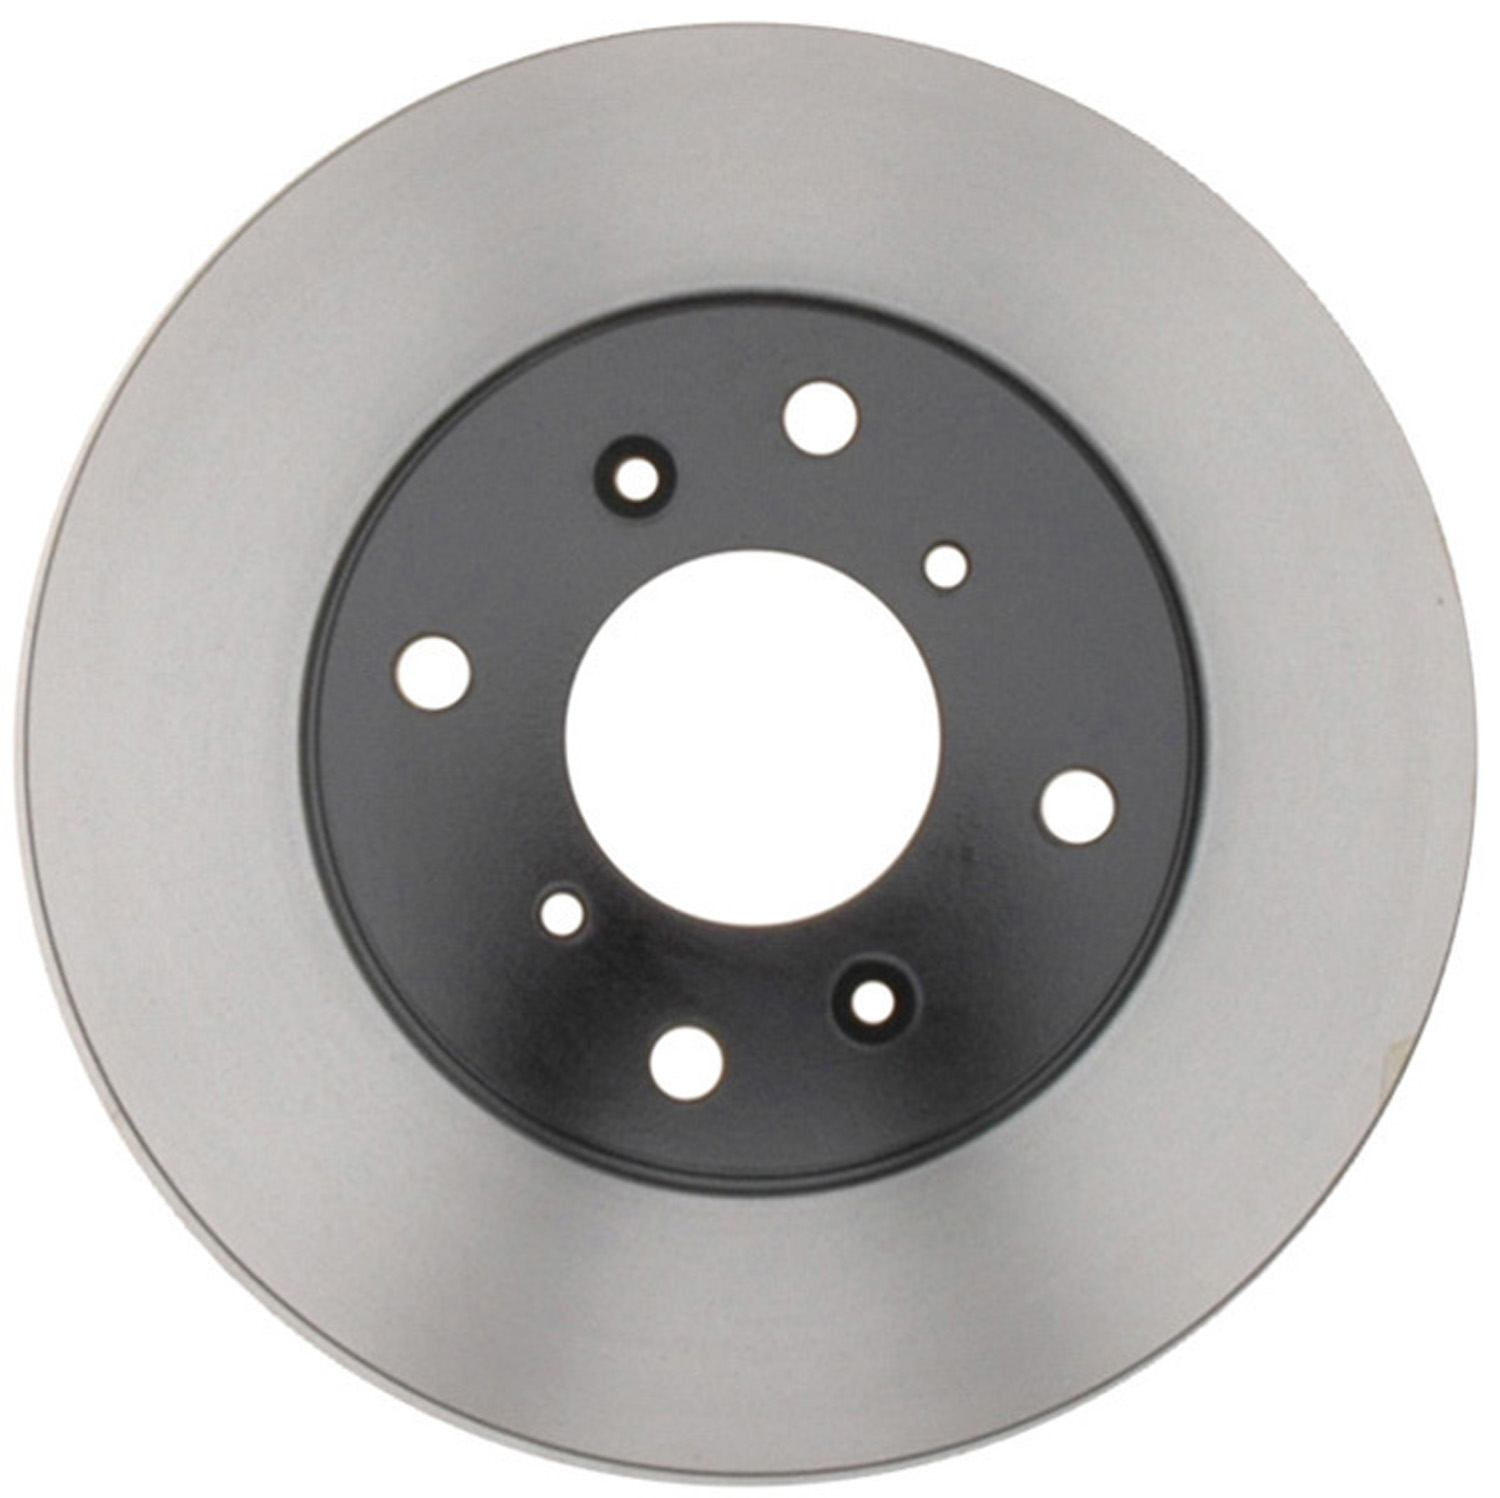 ACDELCO PROFESSIONAL BRAKES - Disc Brake Rotor (Front) - ADU 18A869